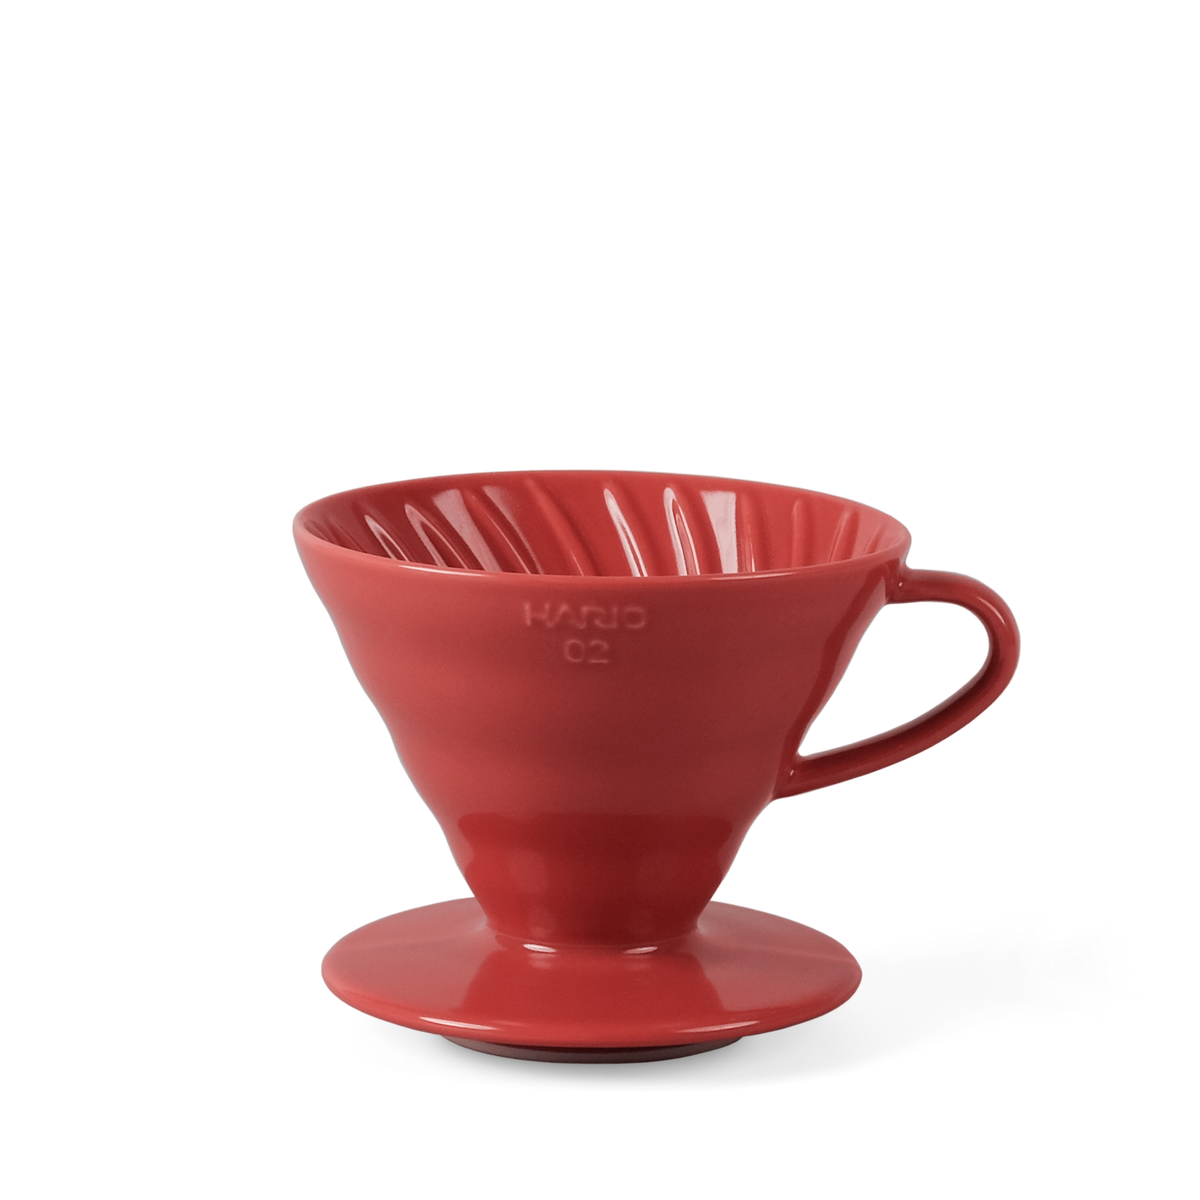 Hario V60 Coffee Dripper - 2 Cup Ceramic Red